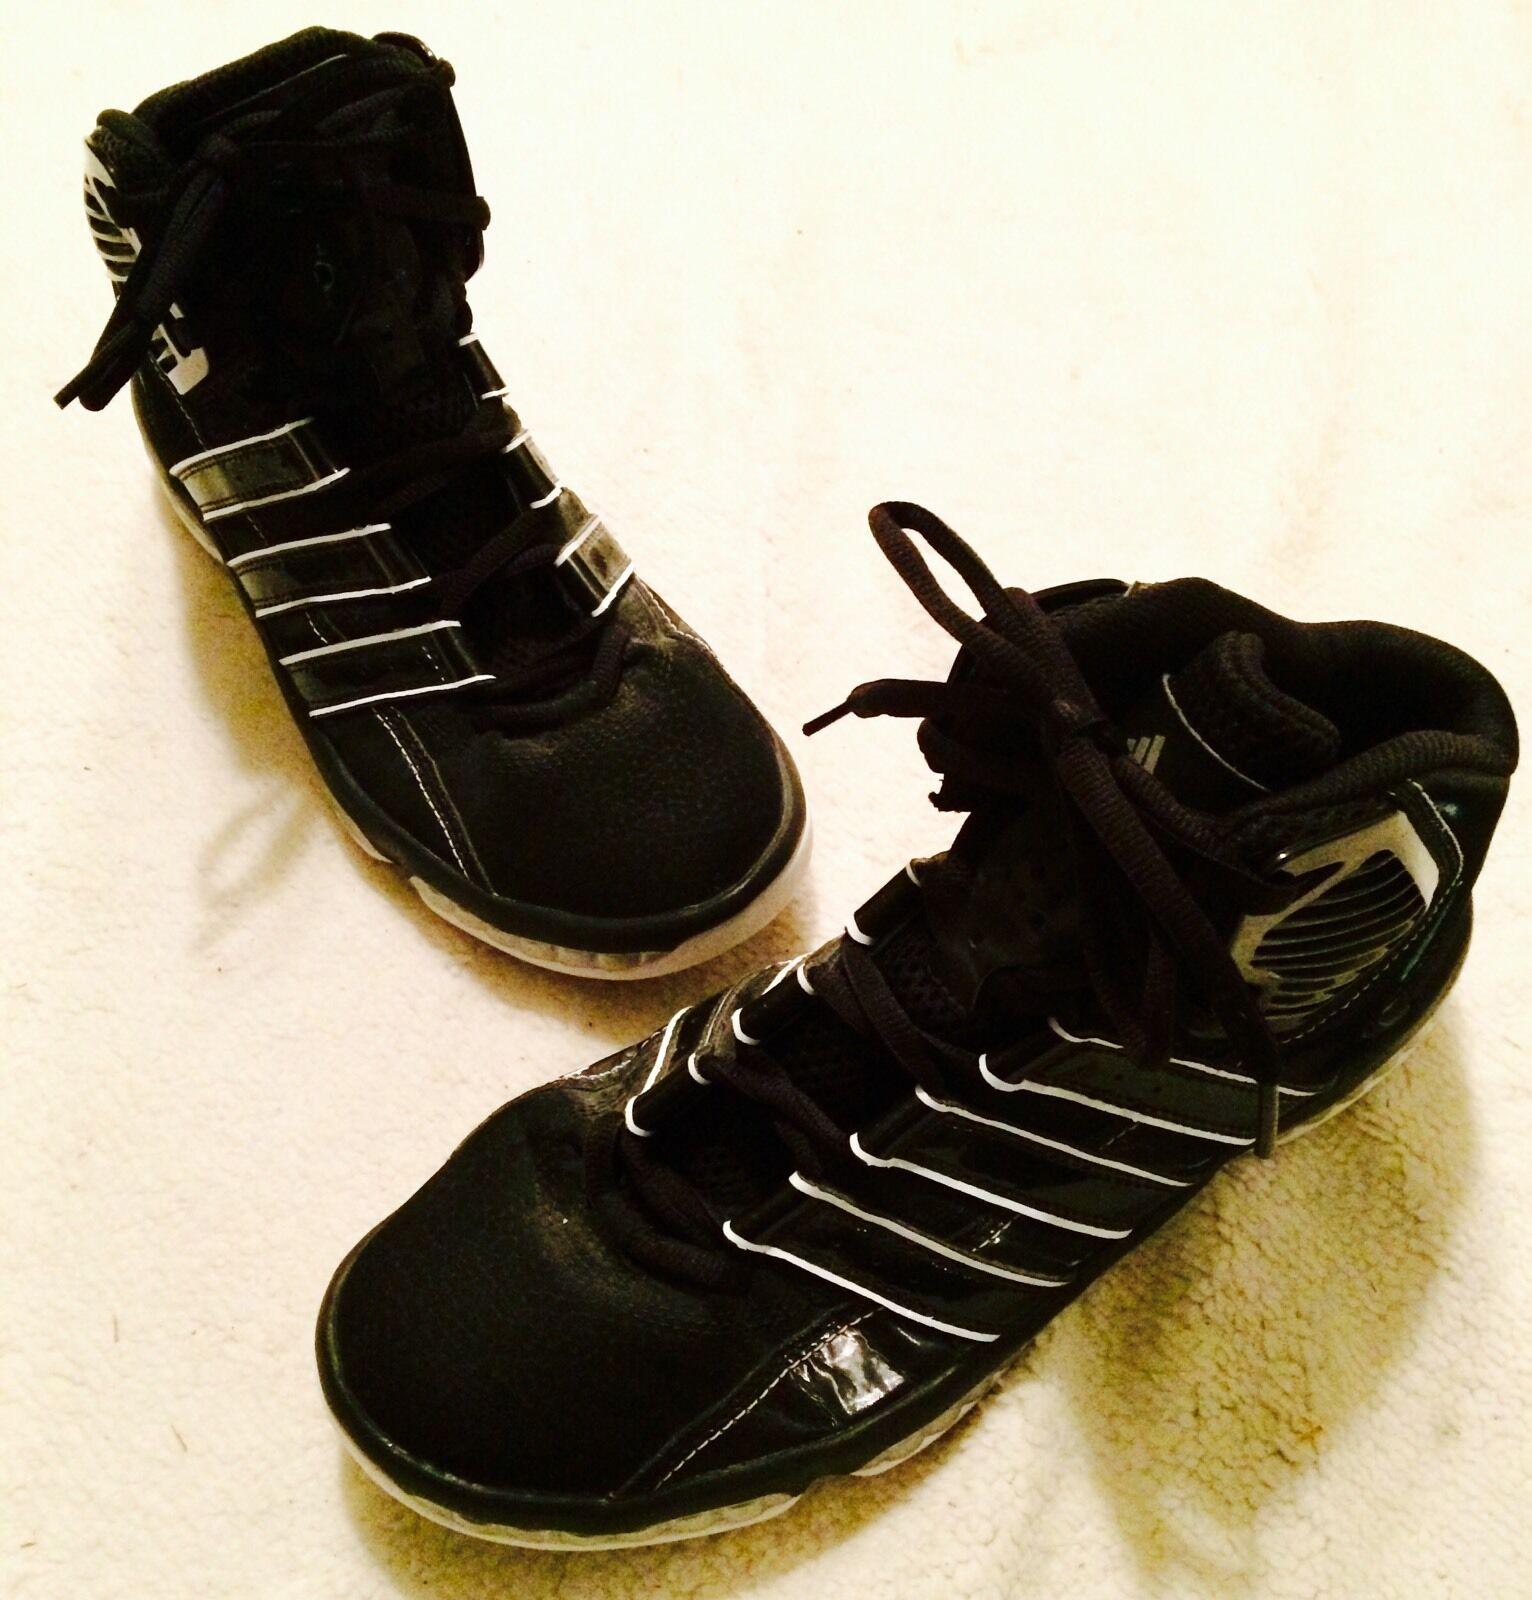 Adidas Mens Sz 10 White & Black MisterFly Pr Basketball Shoes Athletic Very Nice Casual wild